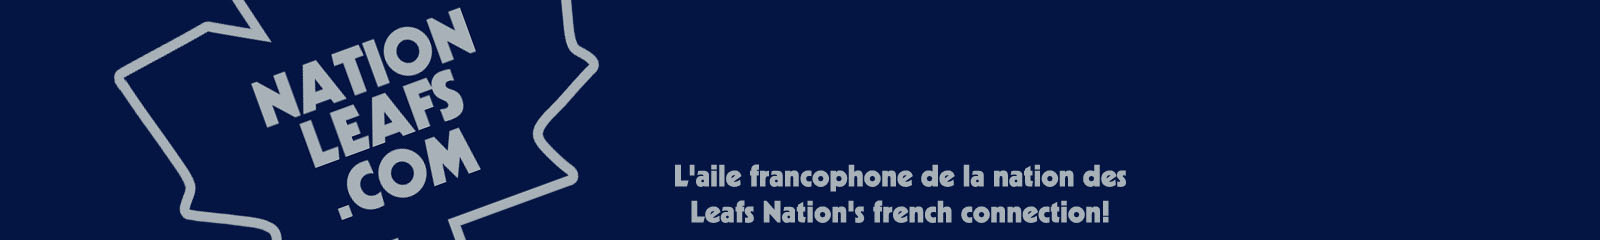 NationLeafs.com